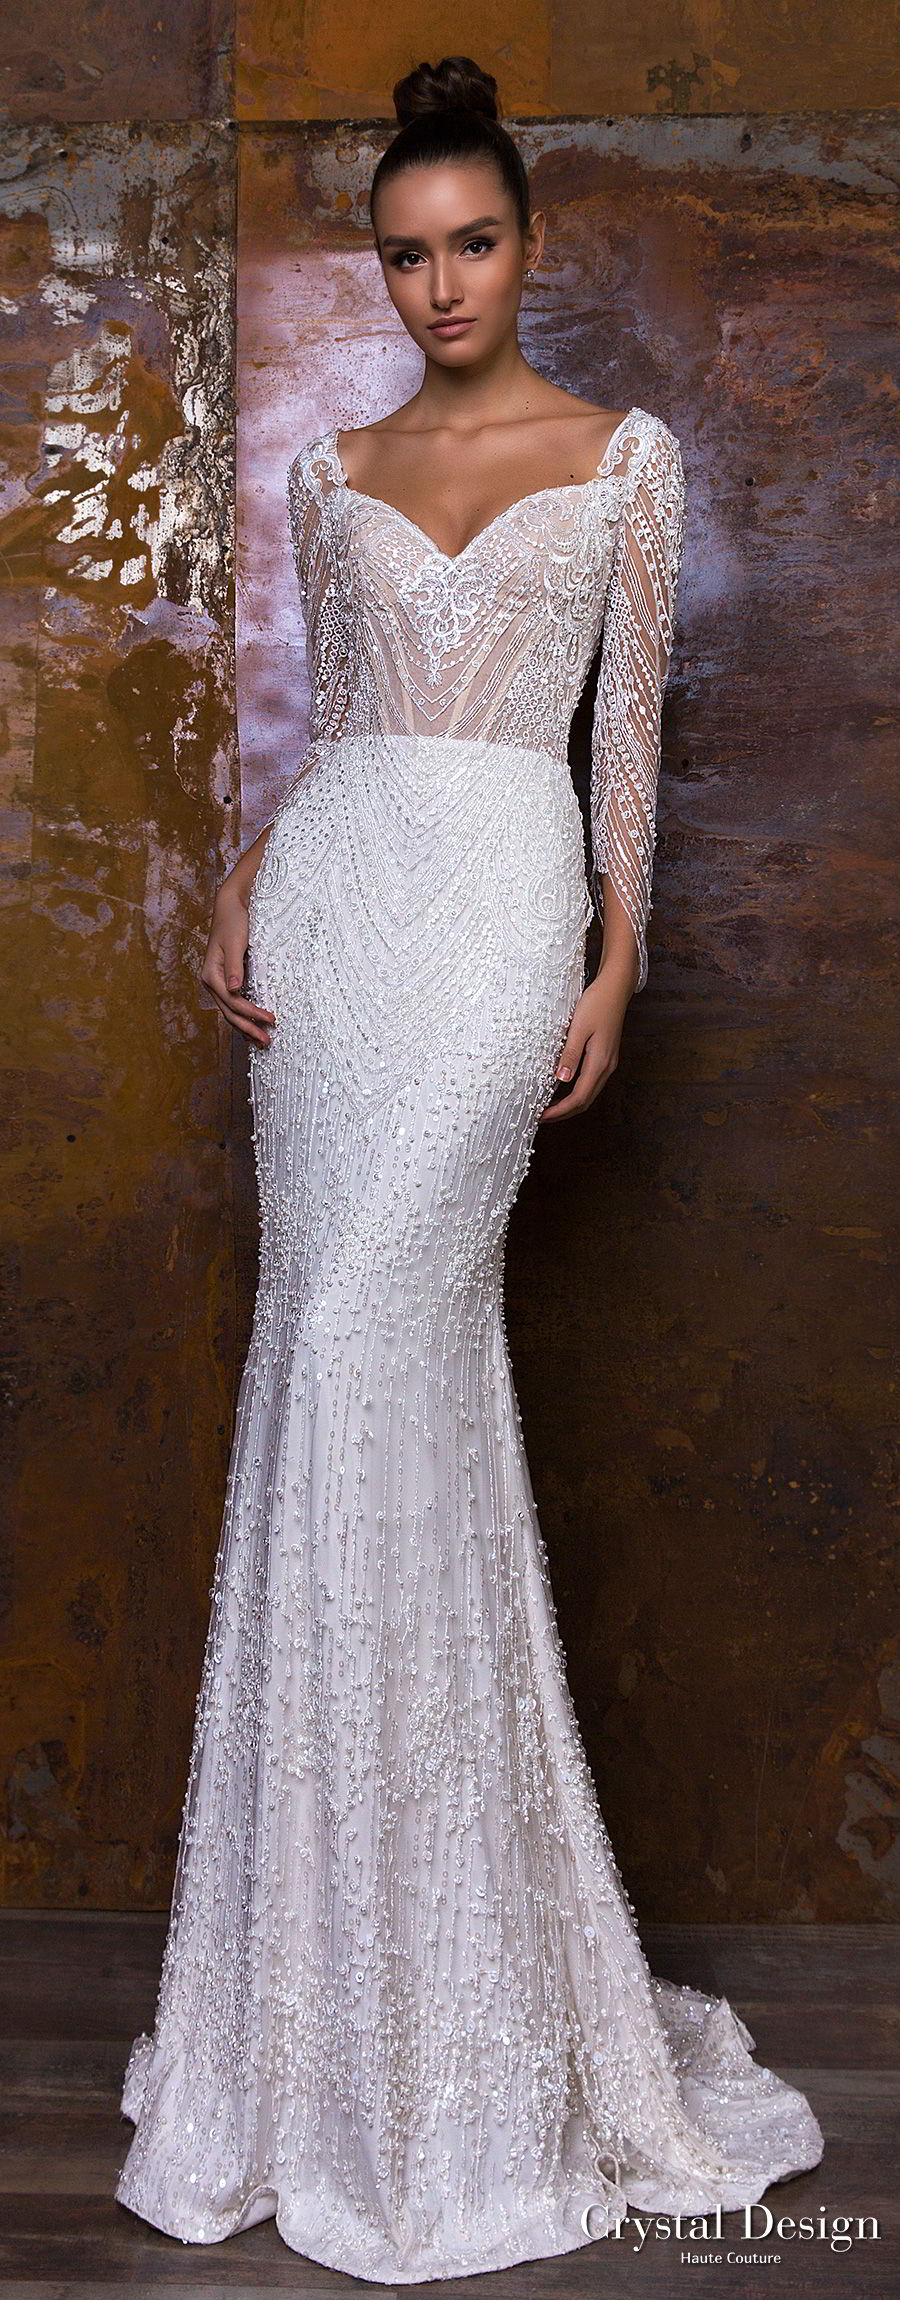 crystal design 2018 long sleeves sweetheart neckline full embellishment glamorous sheath wedding dress sweep train (penelopa) mv